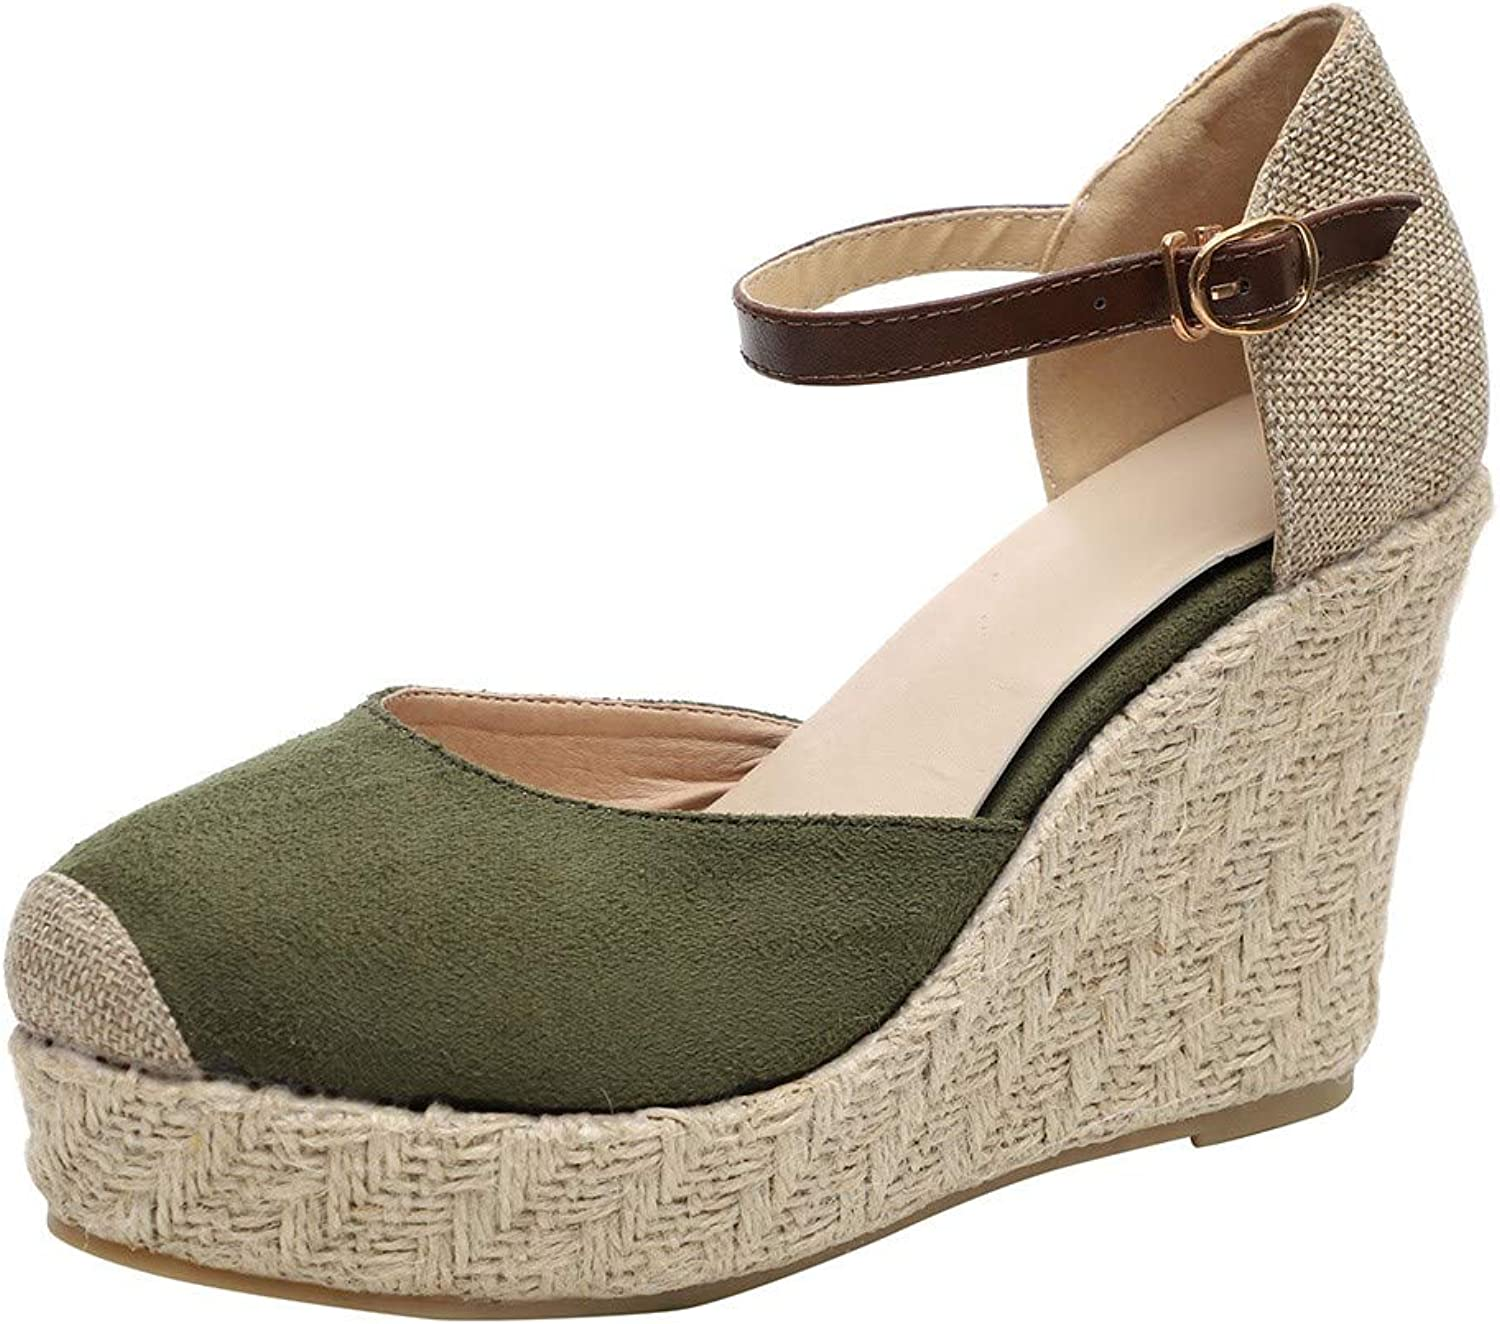 Wedges Sandals for Women,Vibola Ankle Buckle High Heel Pointed-Toe Comfort Flock Outdoor shoes